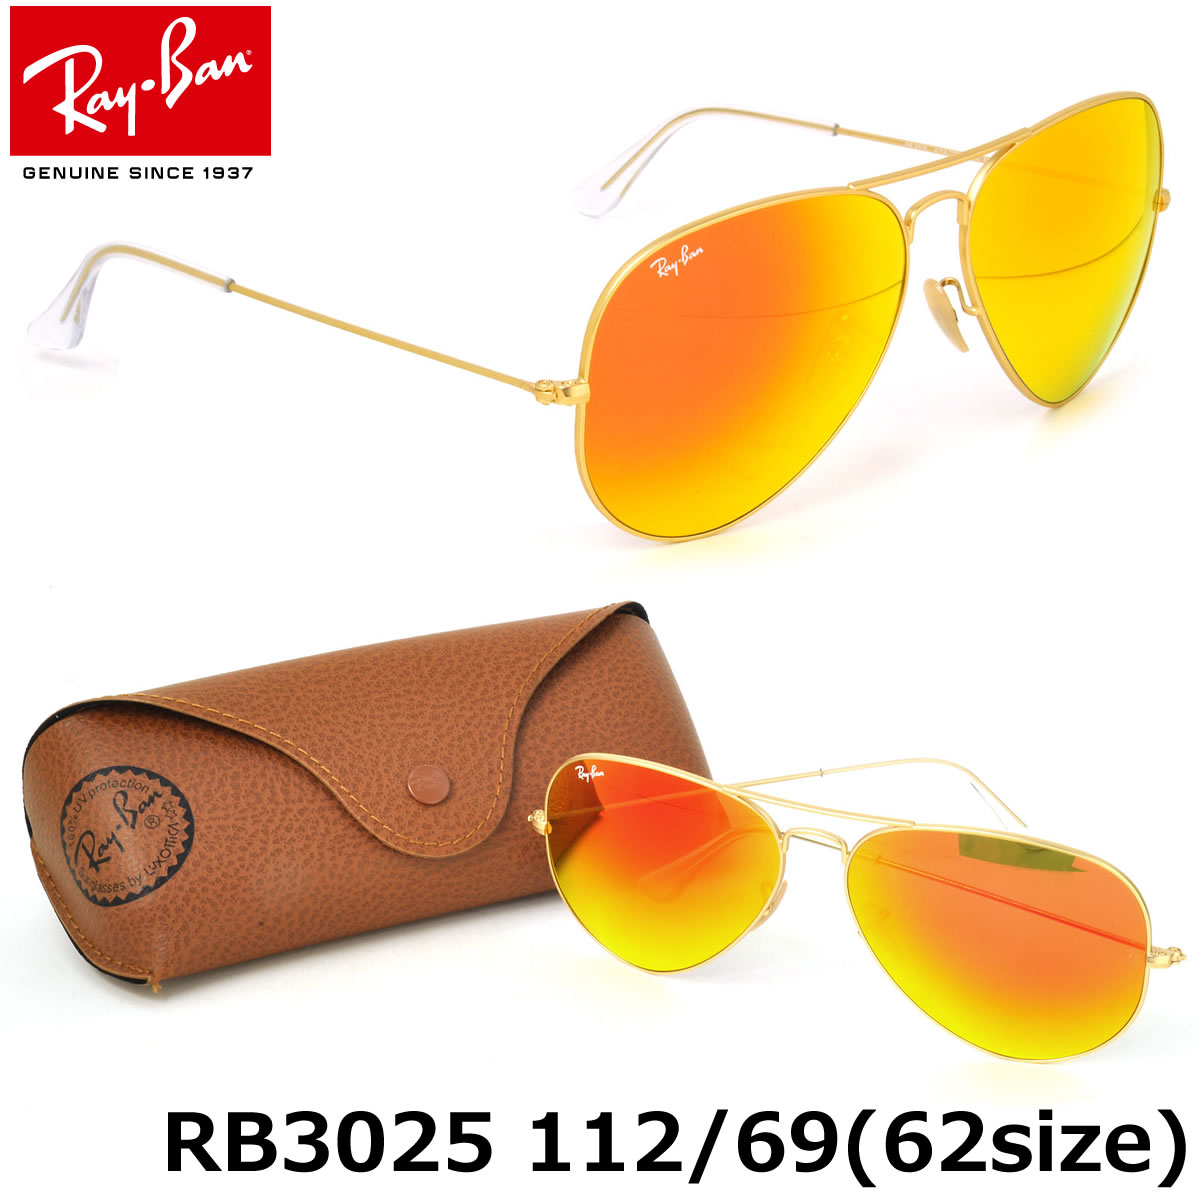 6cb5a6a1b9a Optical Shop Thats  Ray-Ban Sunglasses RB3025 112 69 62size(LARGE ...